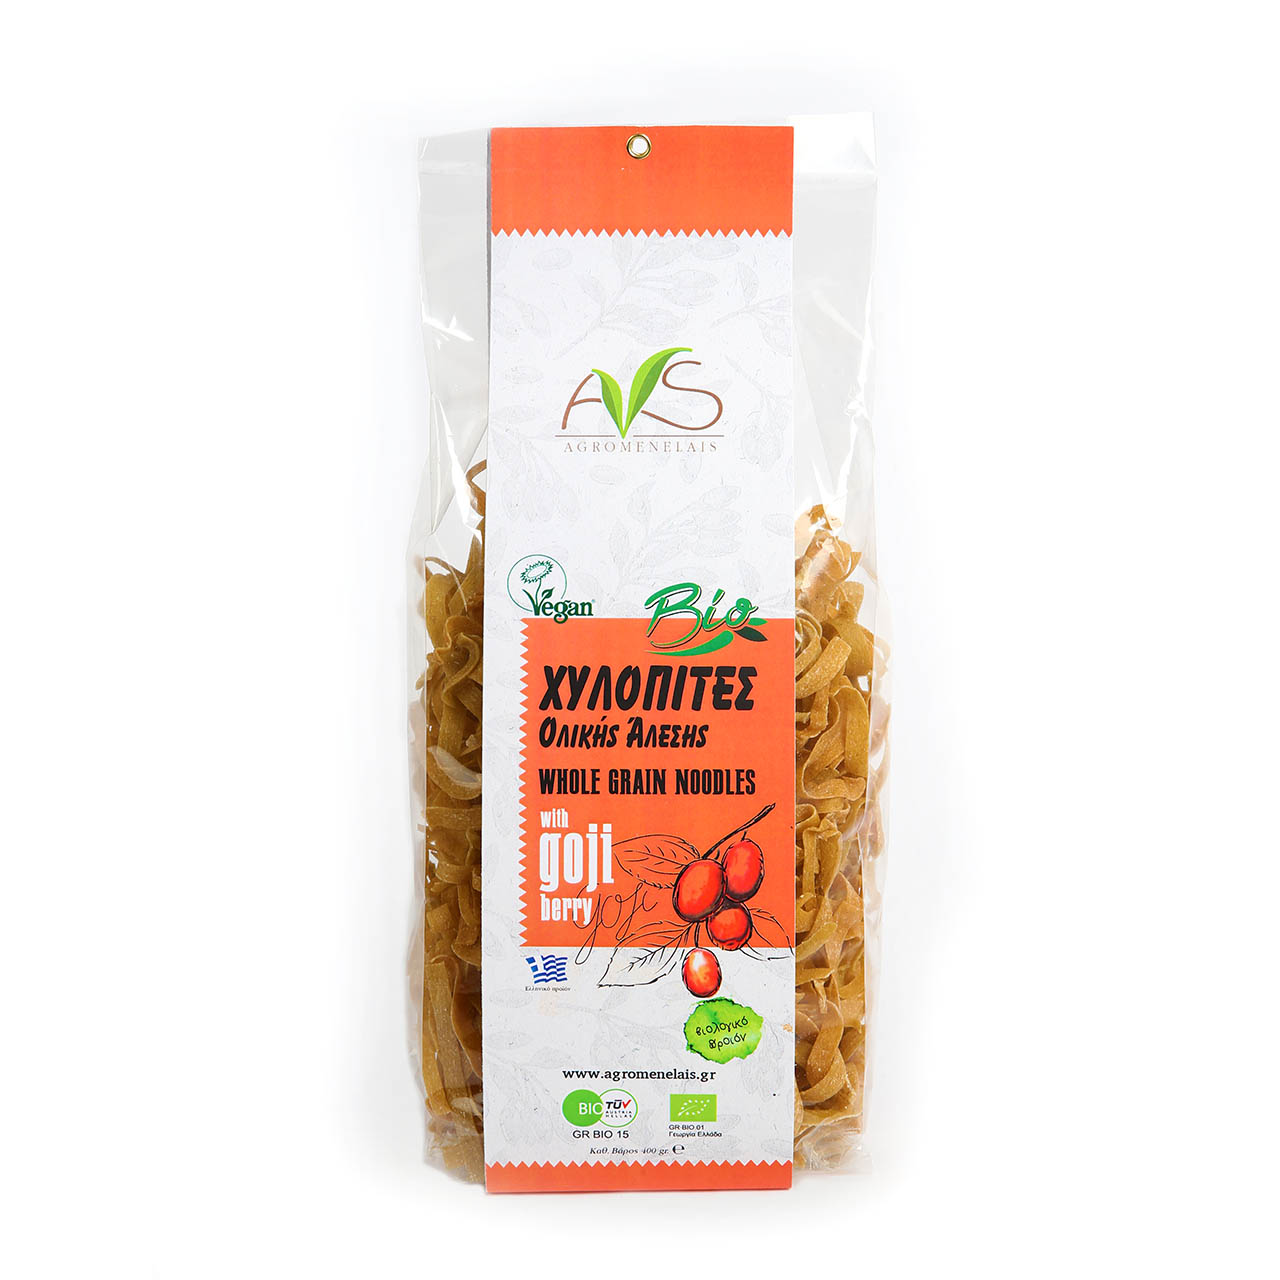 Grain Bio Whole Grain Noodles Agromenelais